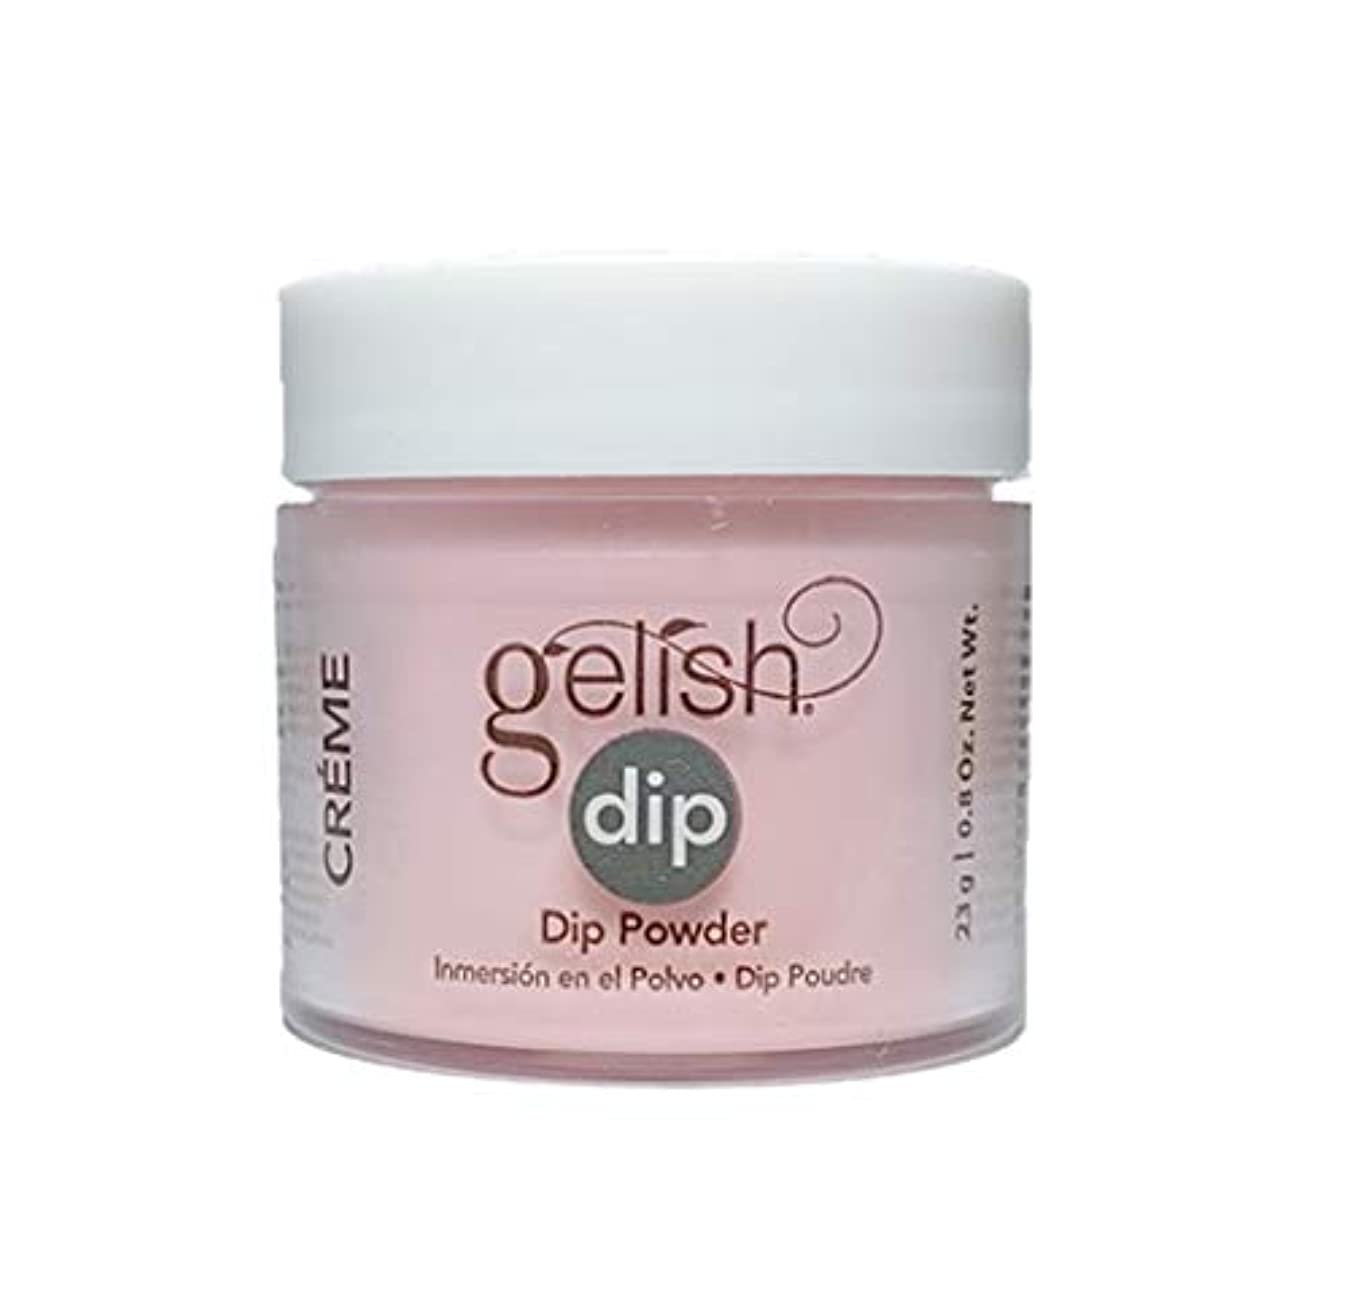 スペード条件付き朝Harmony Gelish - Dip Powder - Beauty Marks The Spot - 23g / 0.8oz